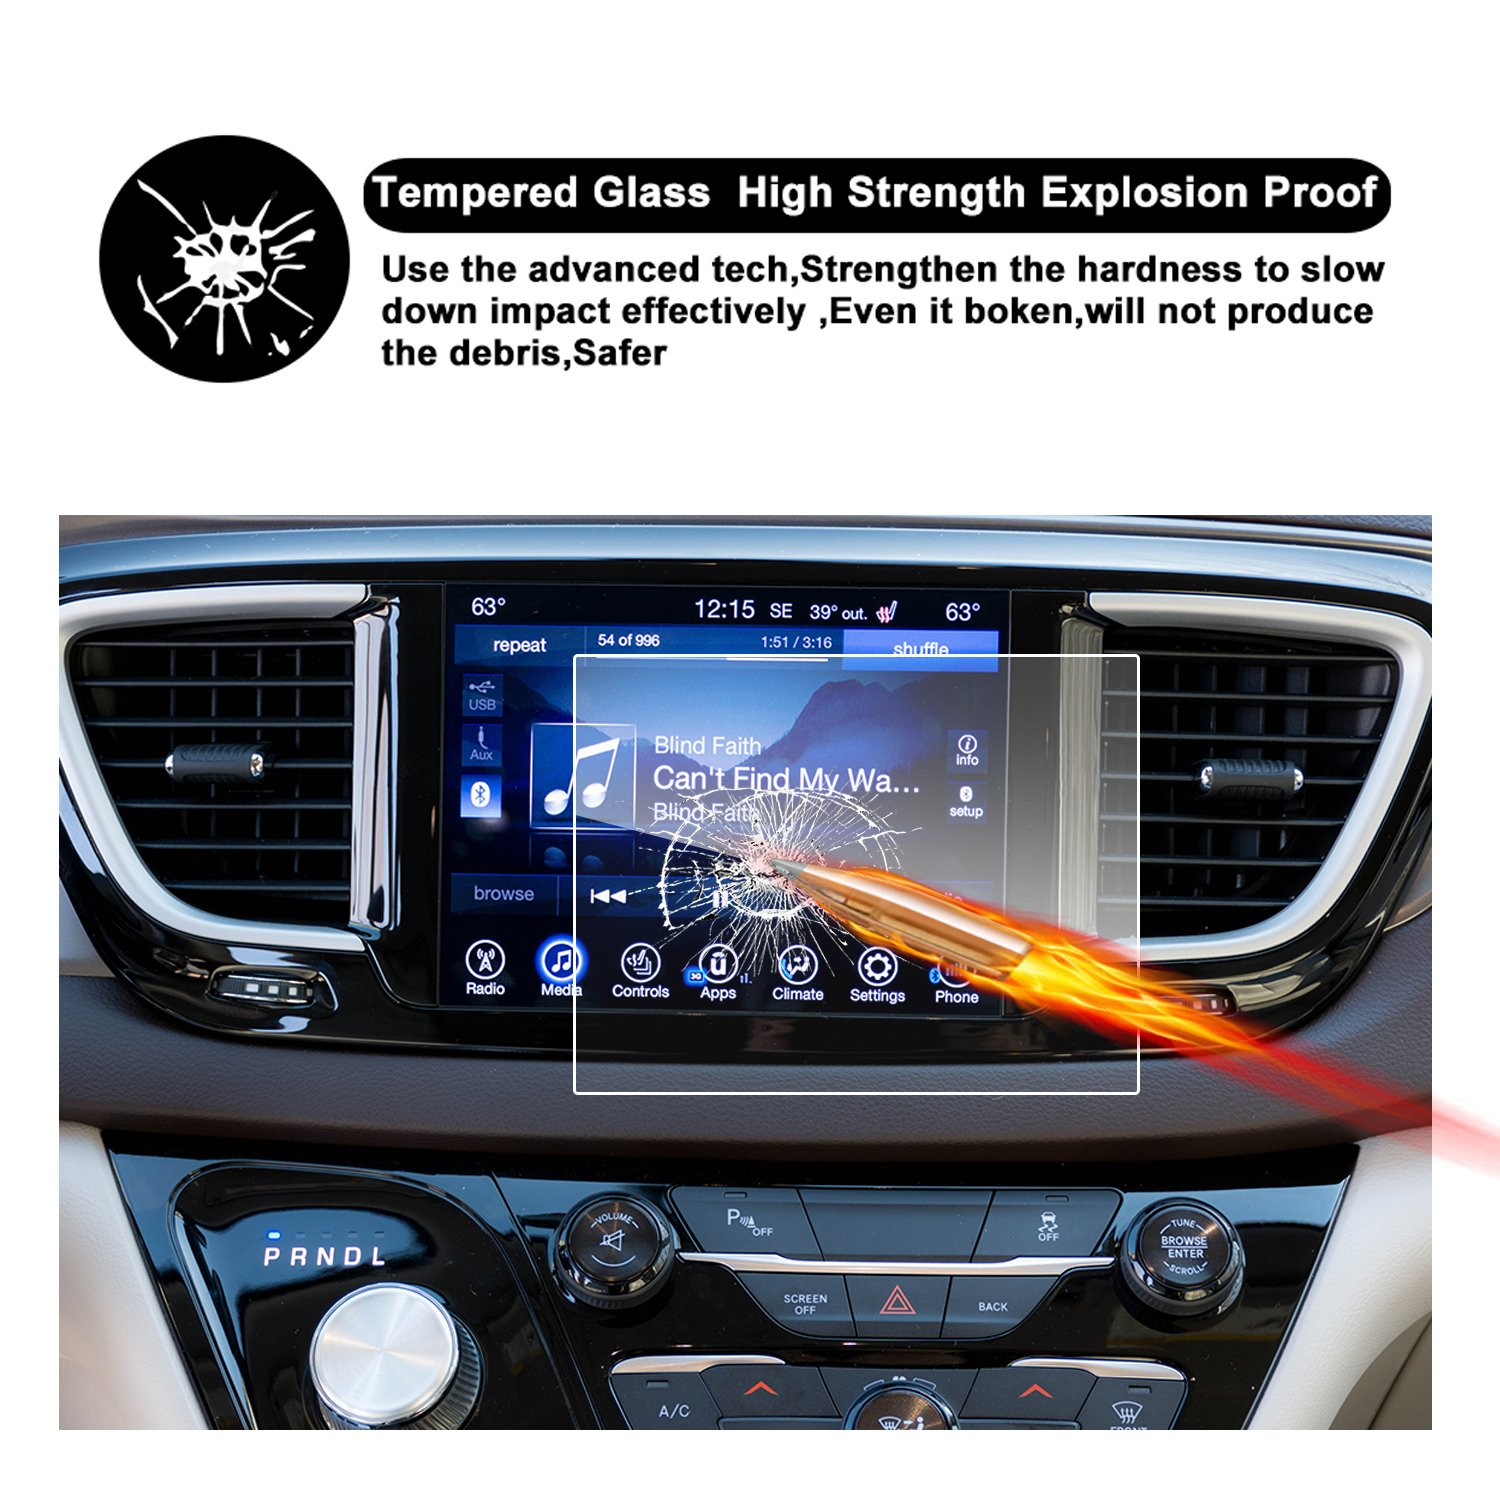 2017 2018 Chrysler Pacifica Hybrid Uconnect Touch Screen Car Display Navigation Screen Protector 8.4-Inch RUIYA HD Clear TEMPERED GLASS Car In-Dash Screen Protective Film CP-8.4